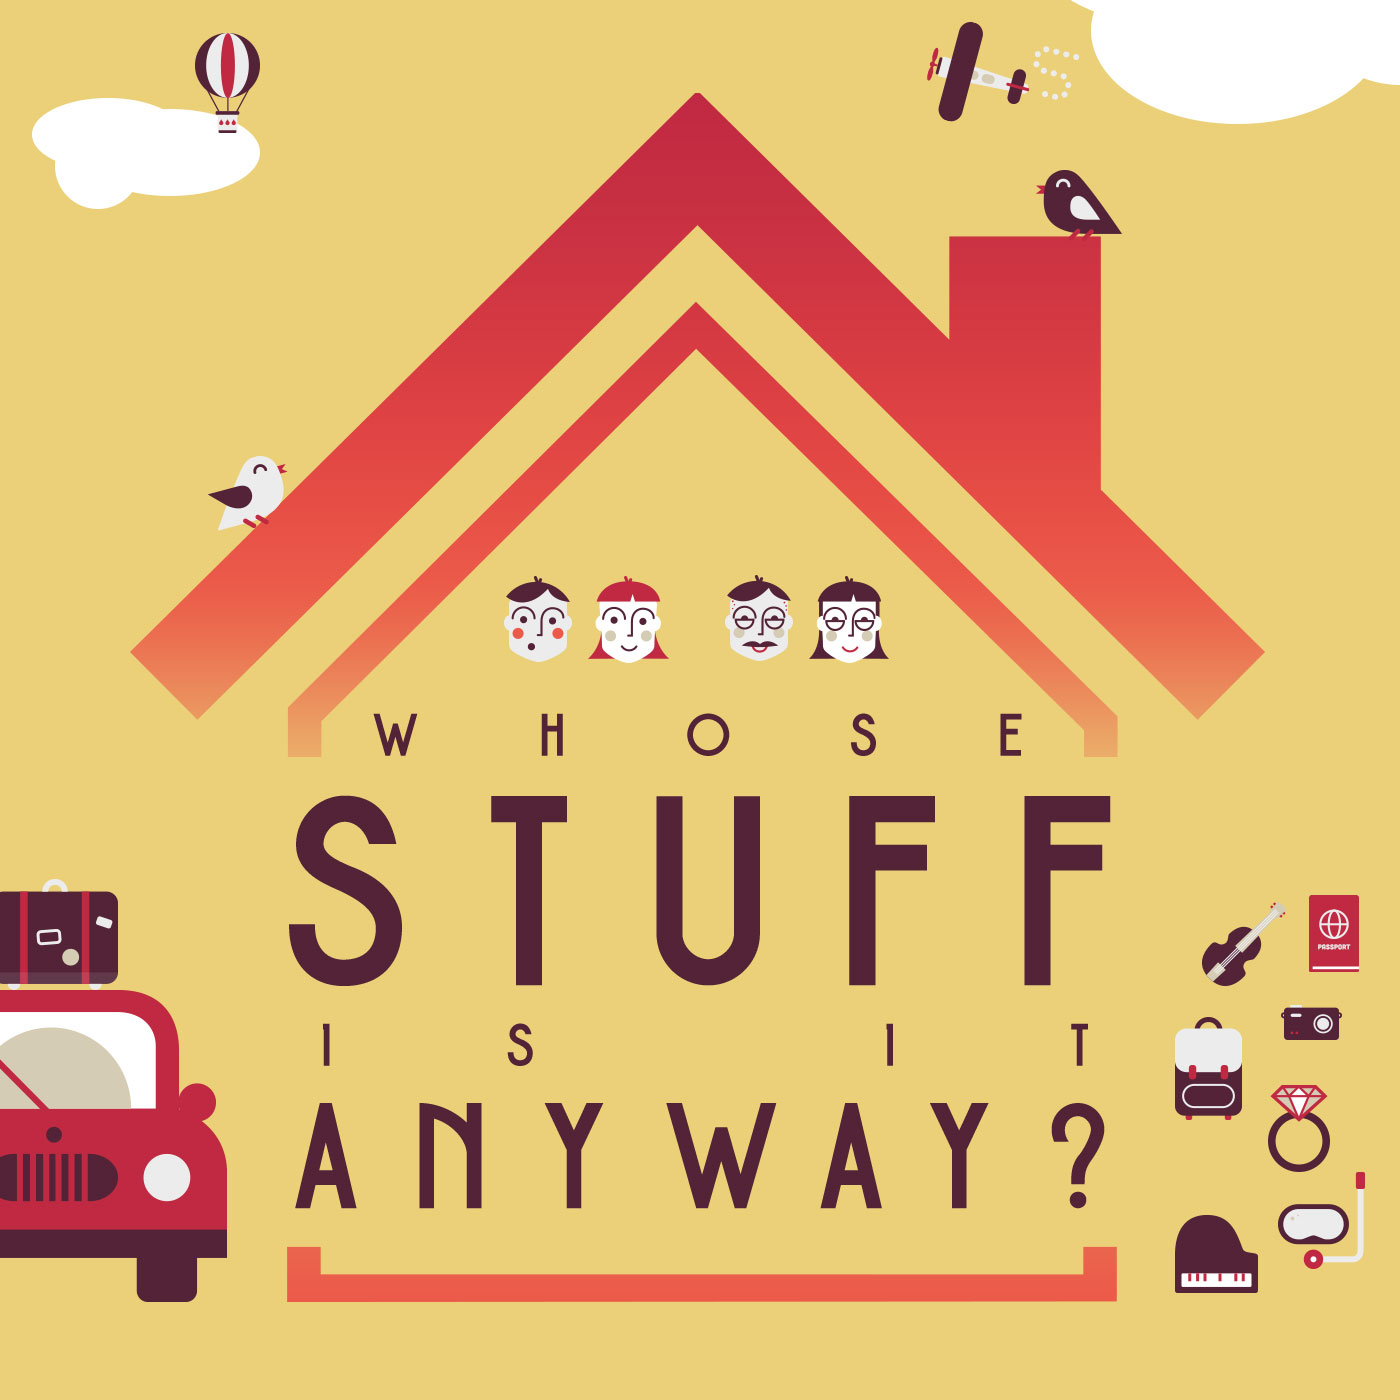 Whose Stuff Is It Anyway?